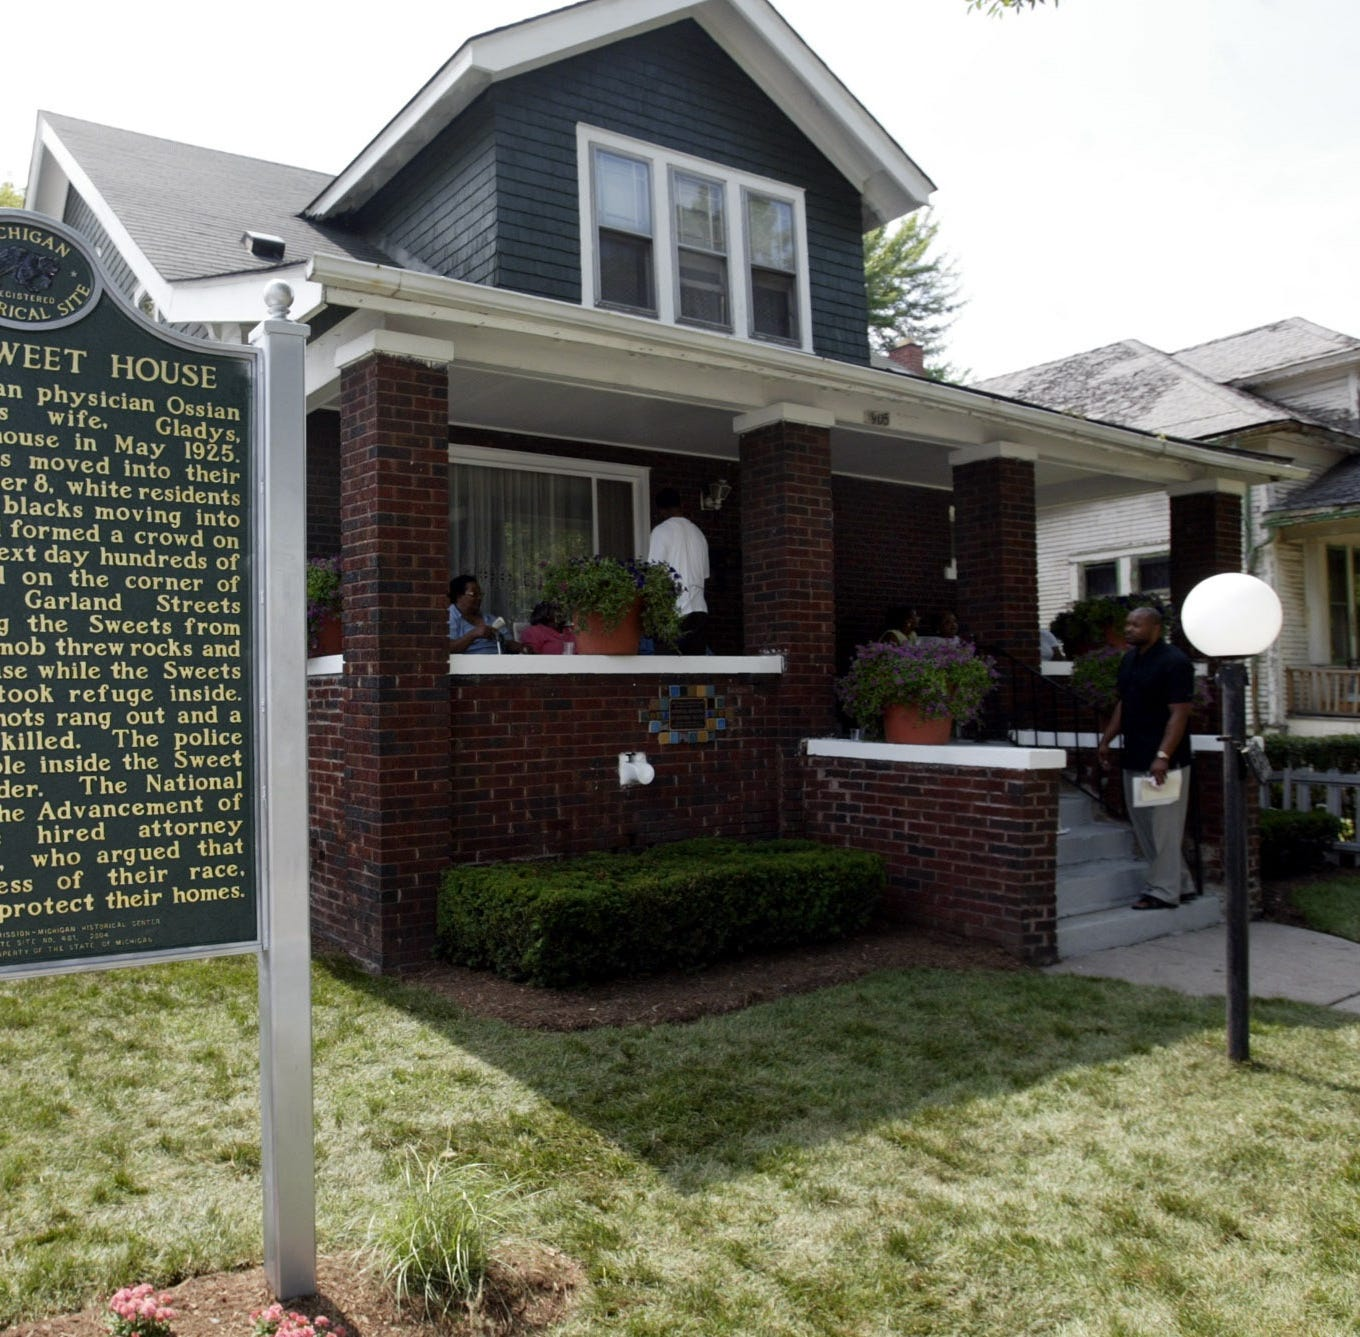 Detroit fights to save home in deserted neighborhood: Why it's a good sign